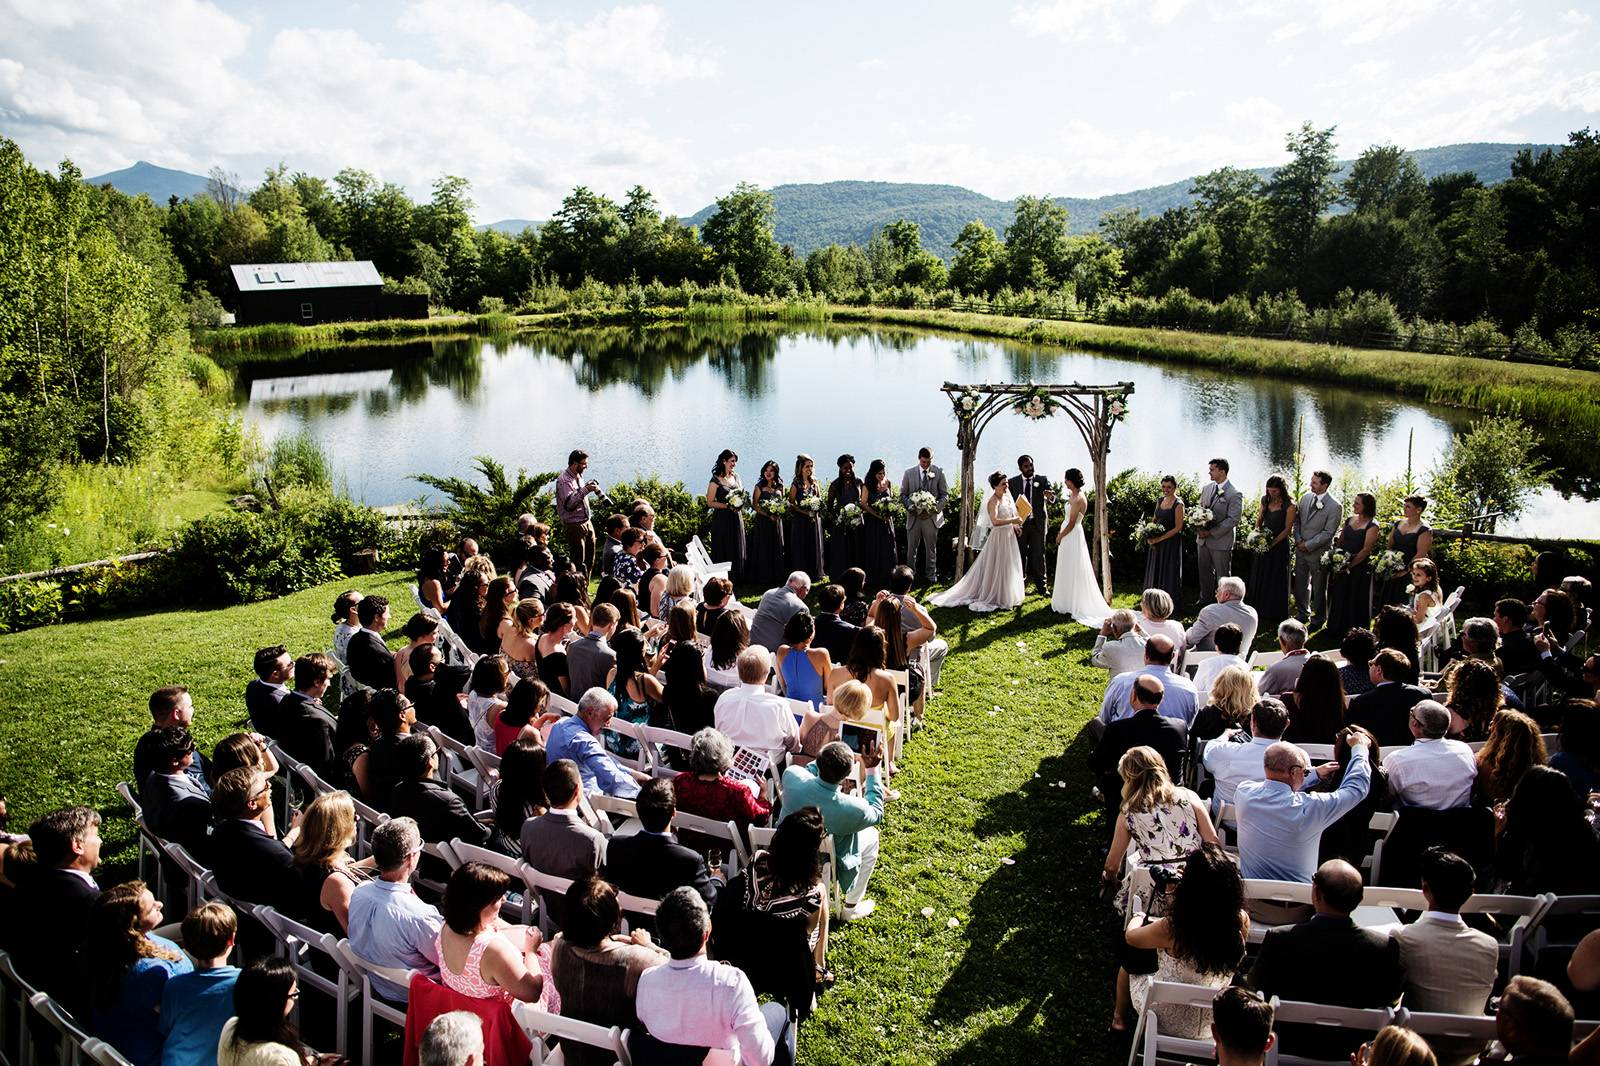 Two brides wedding ceremony at The Ponds at Bolton Valley for summer Vermont Wedding captured by Hap